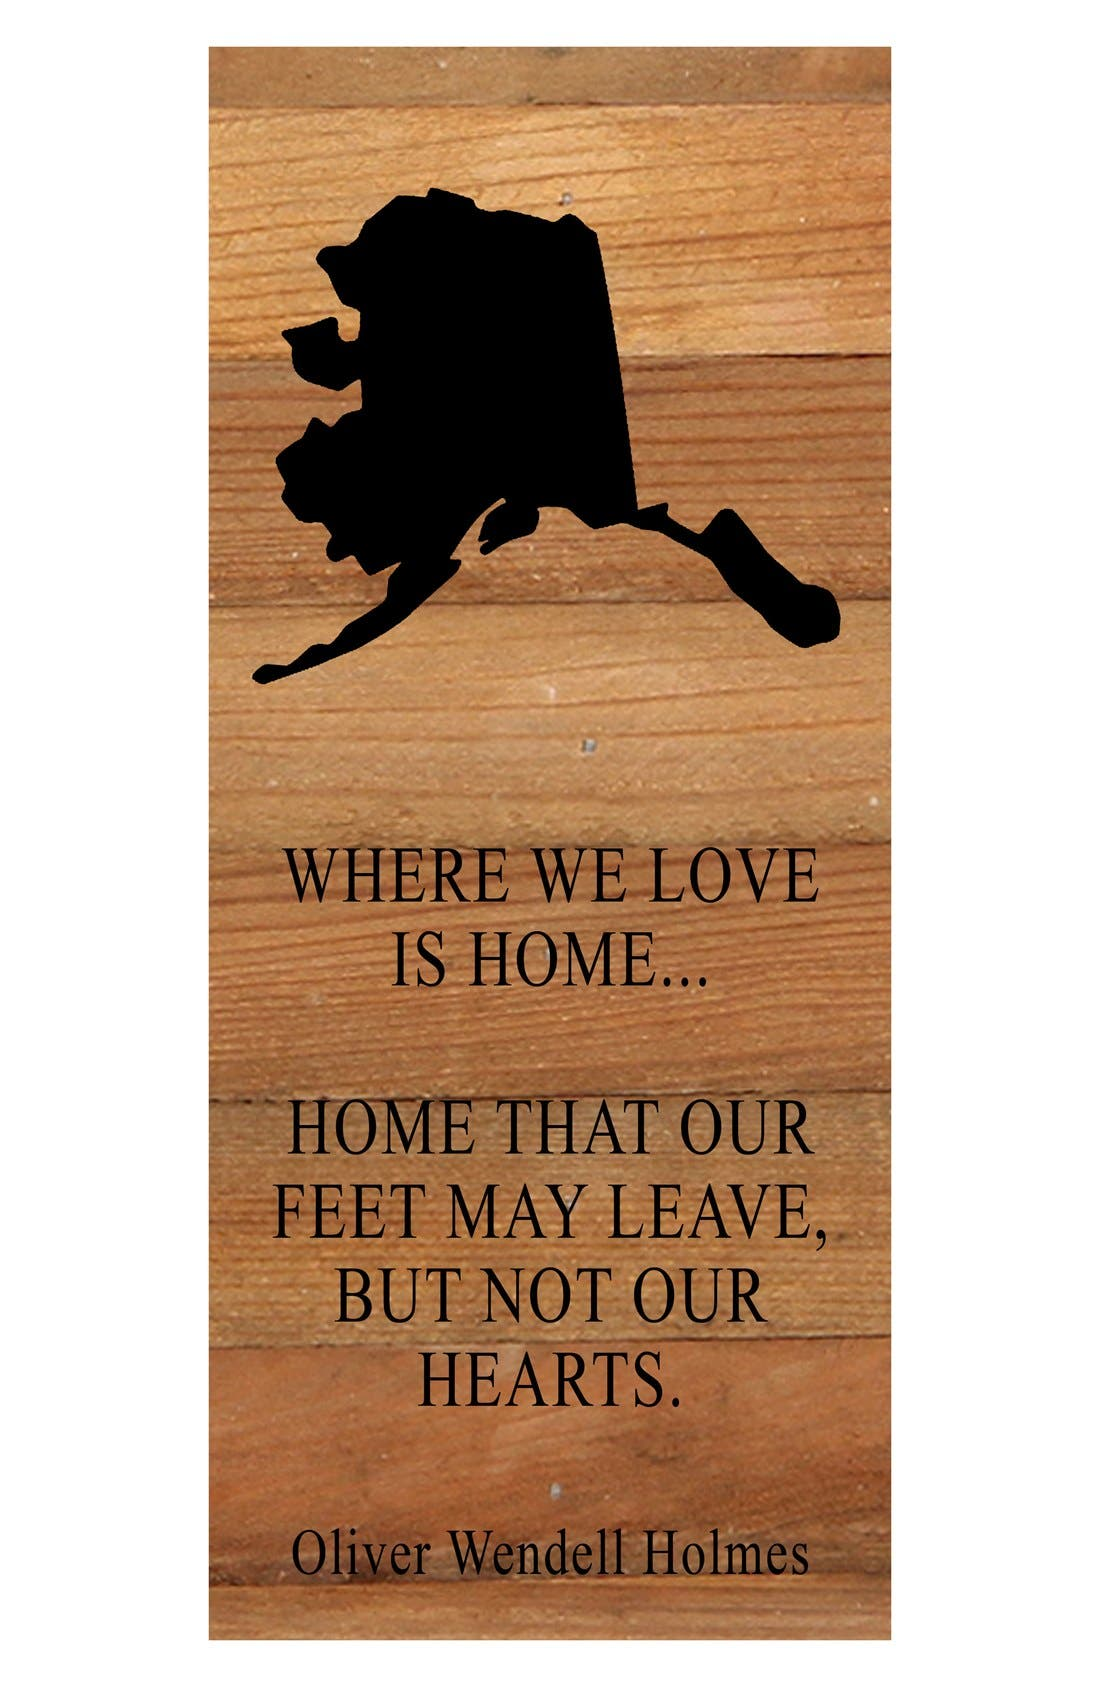 Second Nature 'Where We Love is Home' Reclaimed Wood Wall Art,                             Main thumbnail 1, color,                             200